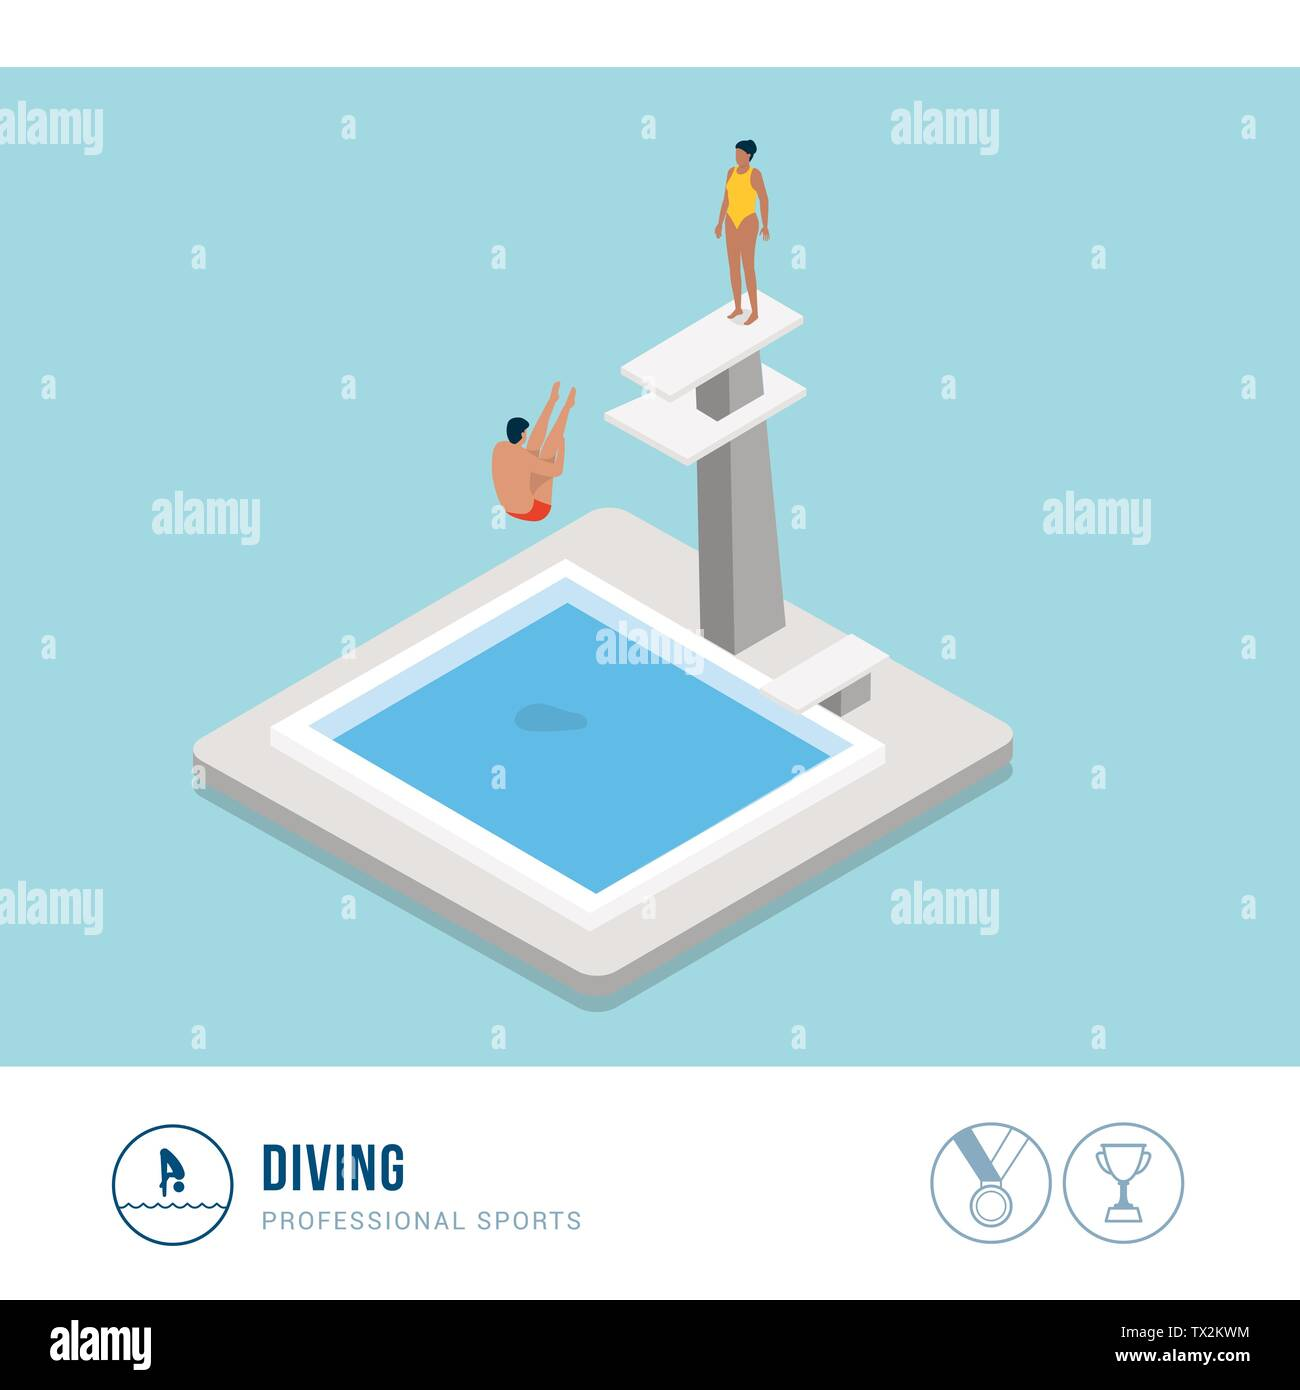 Professional sports competition: diving, professional diver jumping from a platform - Stock Vector